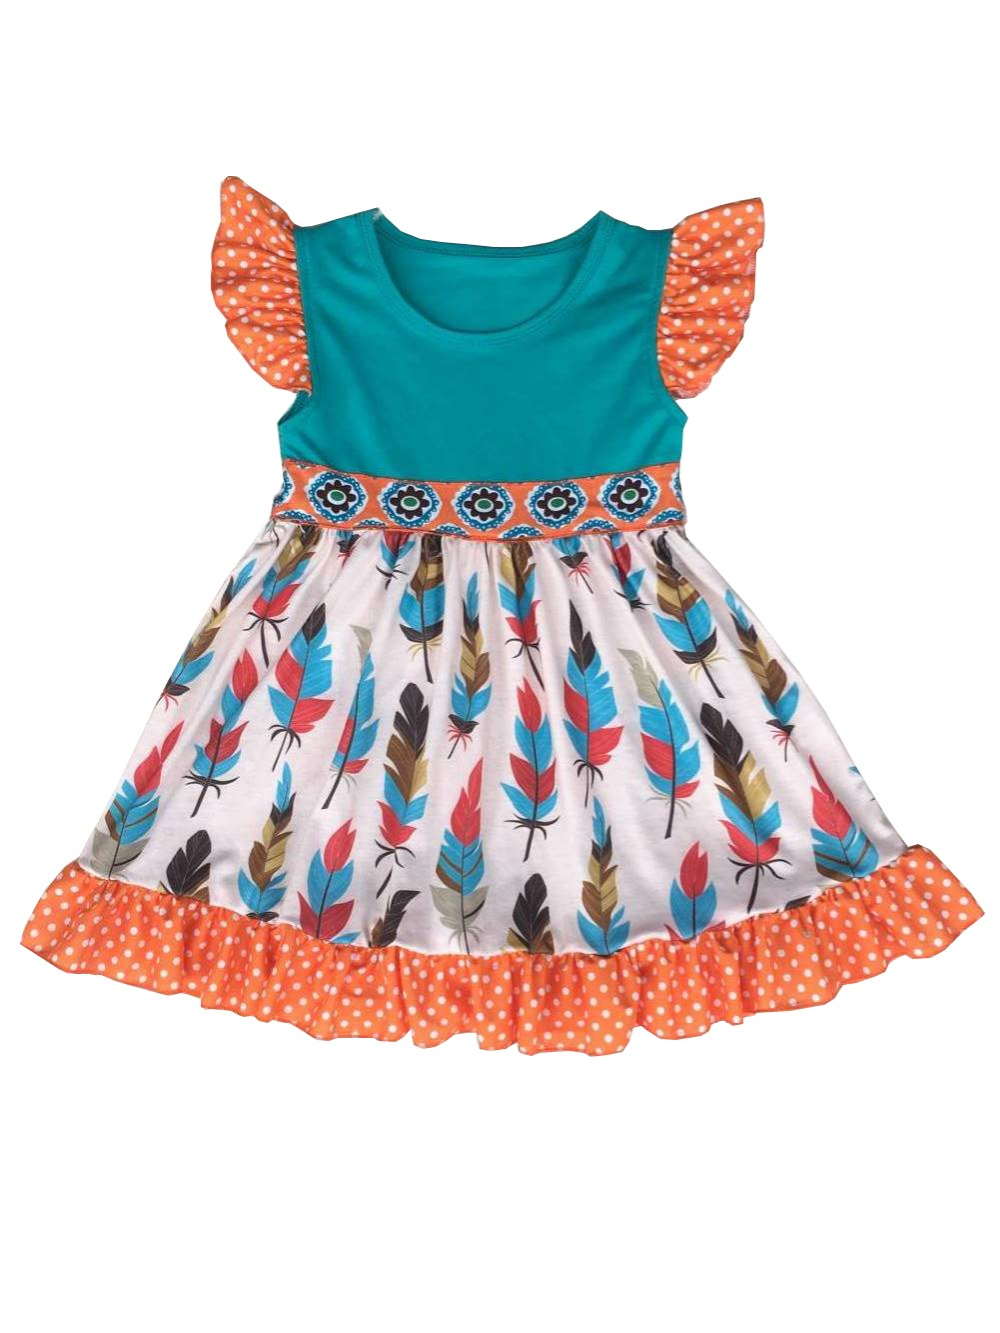 Girls dress 3